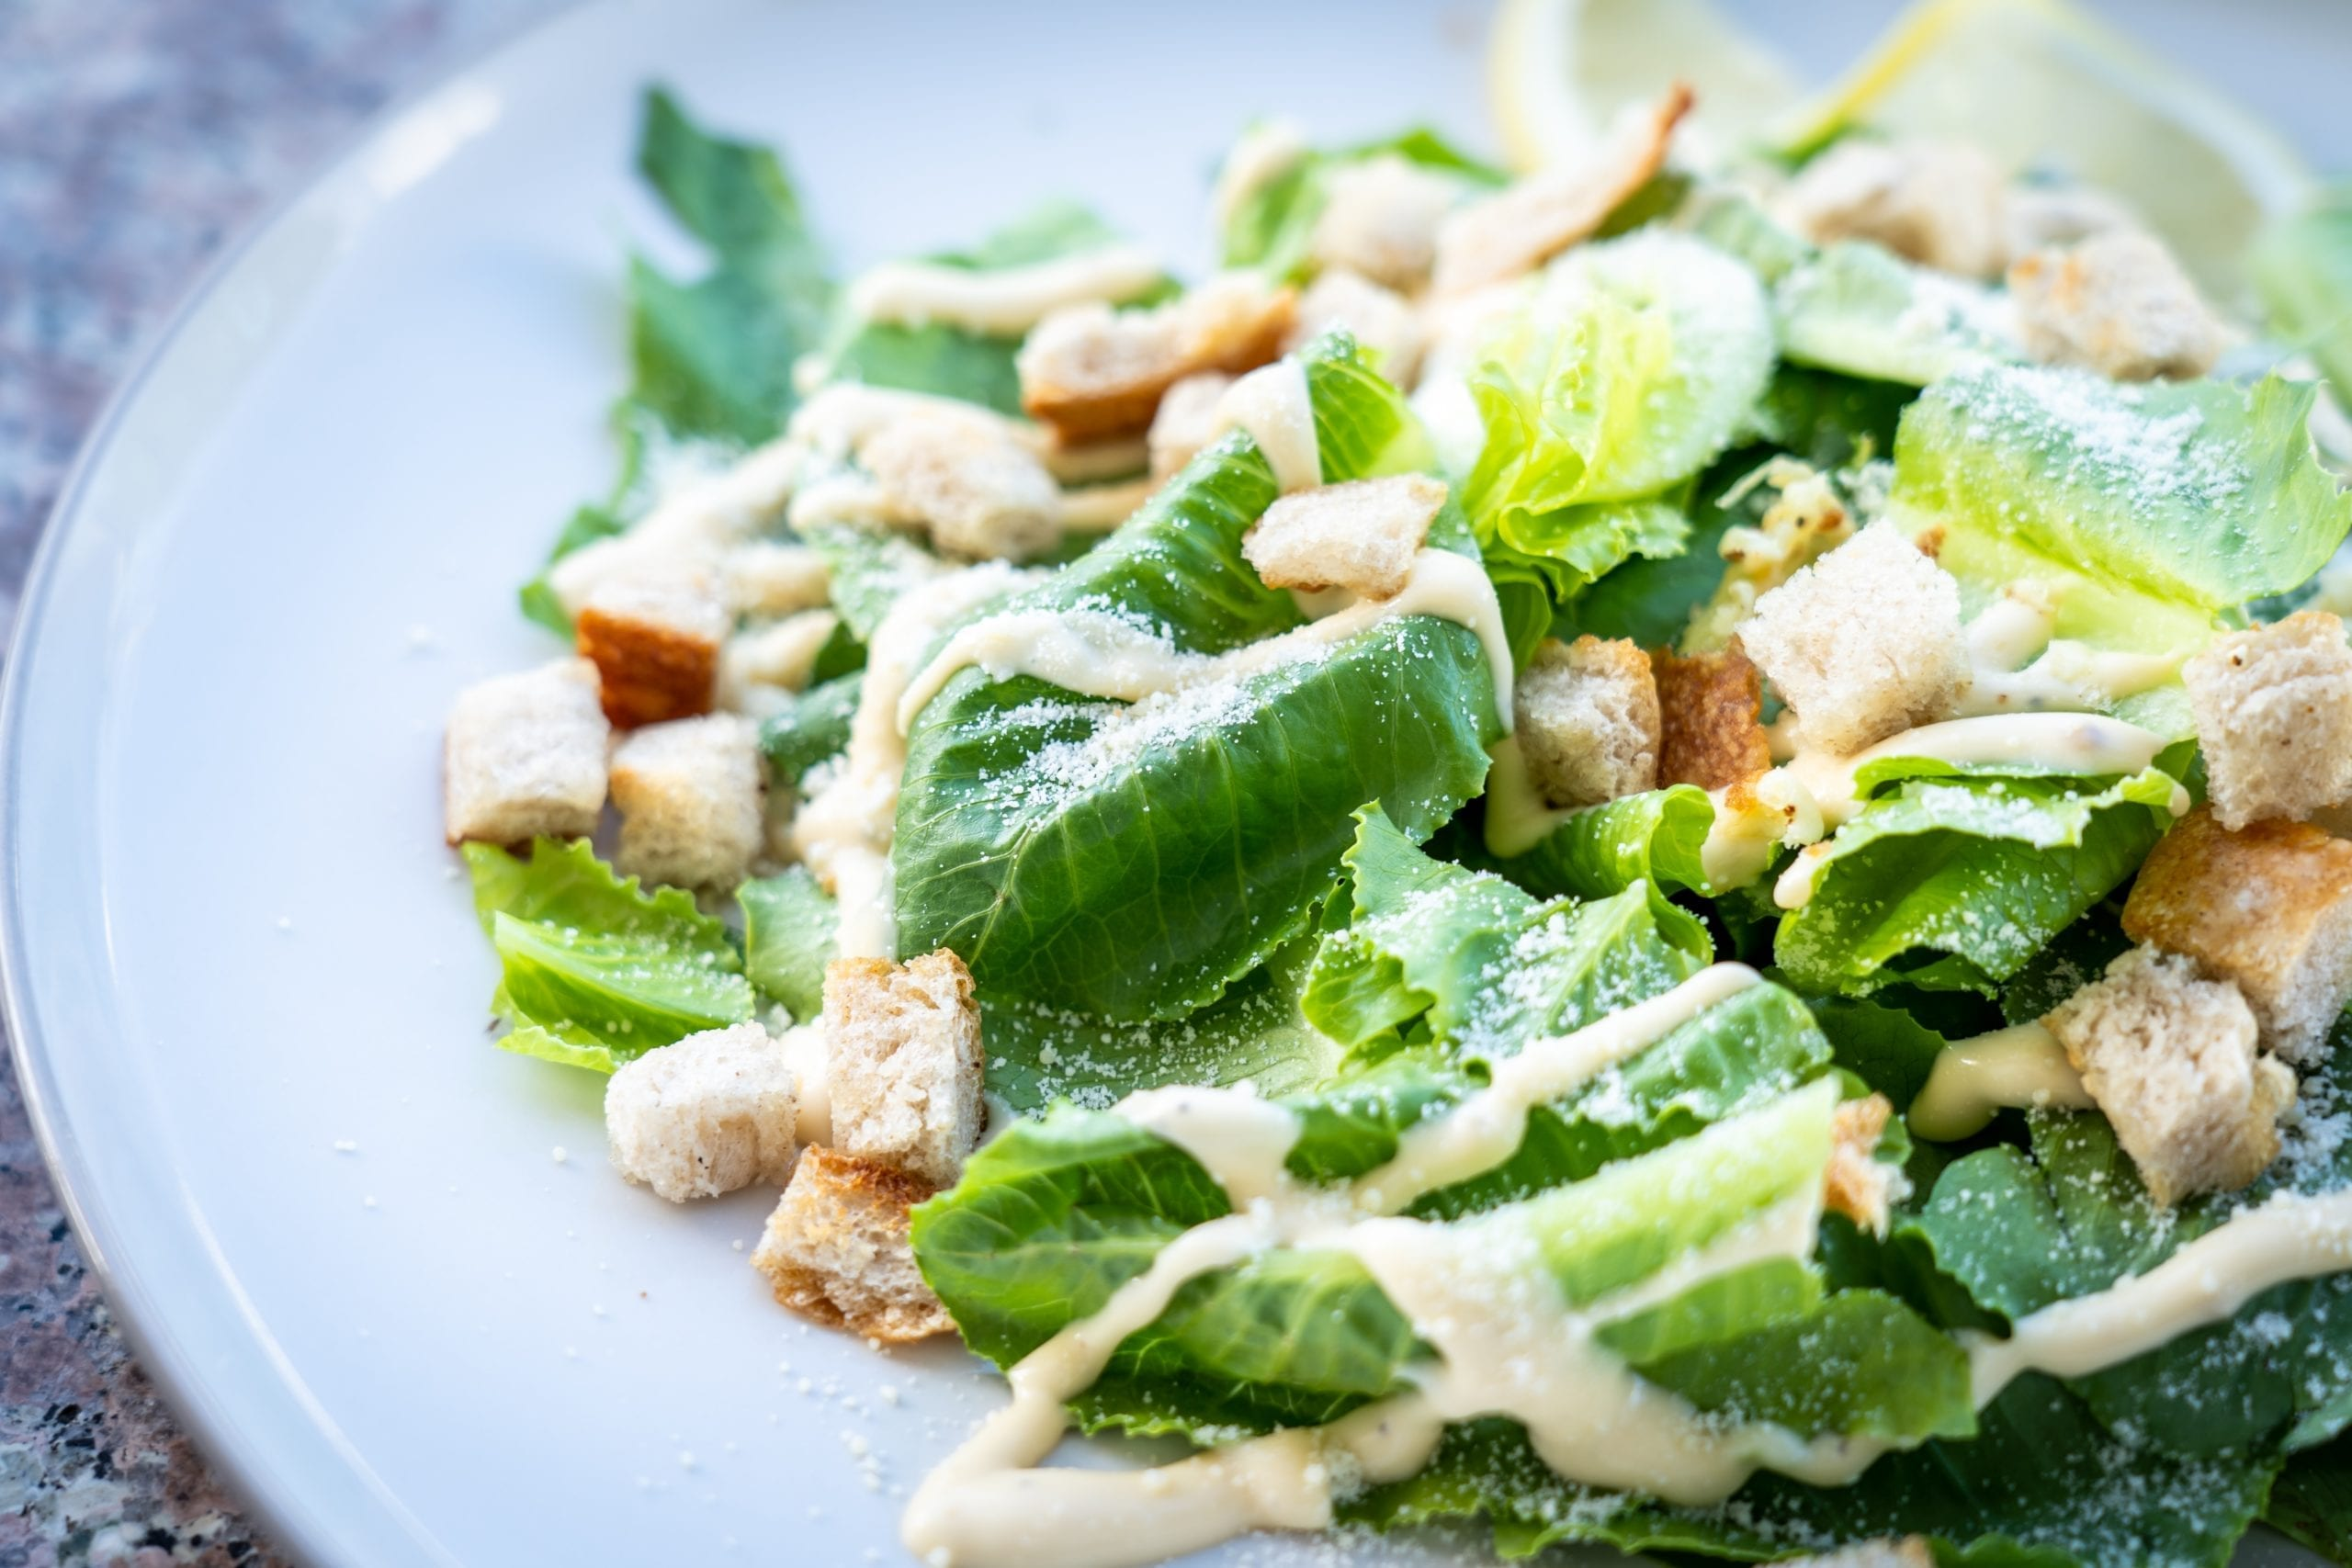 Caesar salad with croutons, romaine lettuce, Parmesan cheese, and Caesar dressing drizzled on top